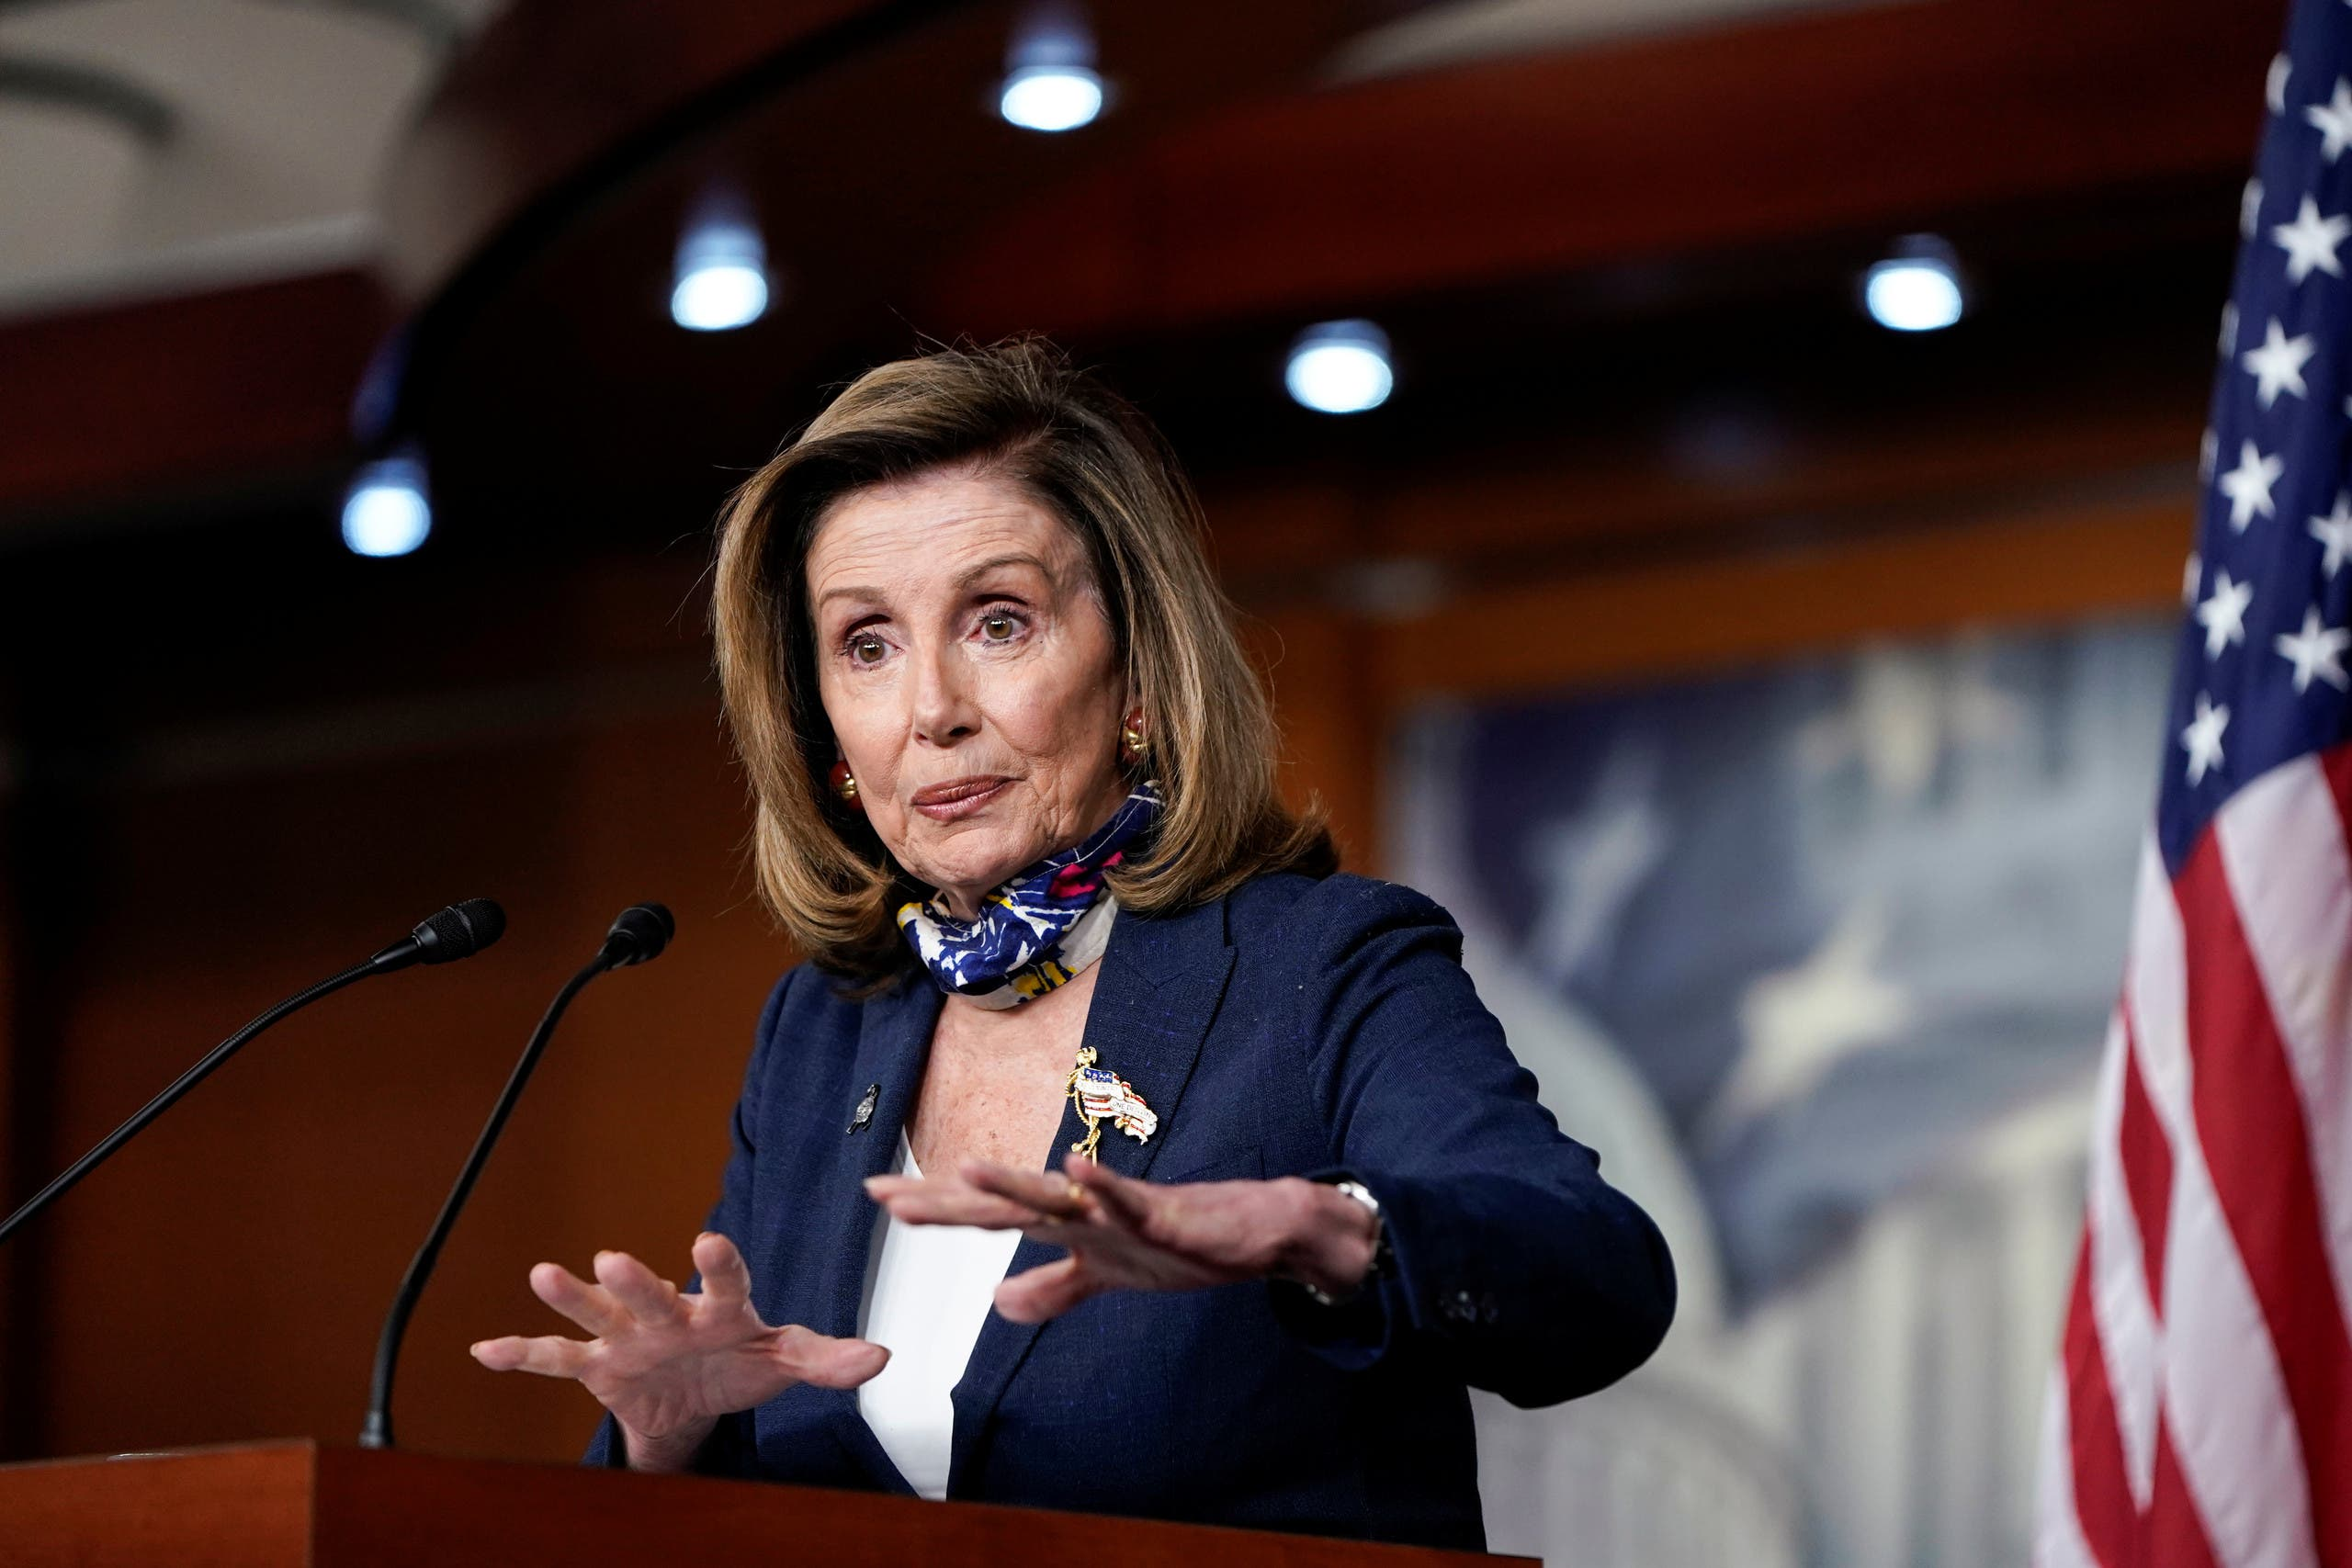 Pelosi speaks during a briefing to the media on Capitol Hill in Washington, US, September 10, 2020. (Reuters)